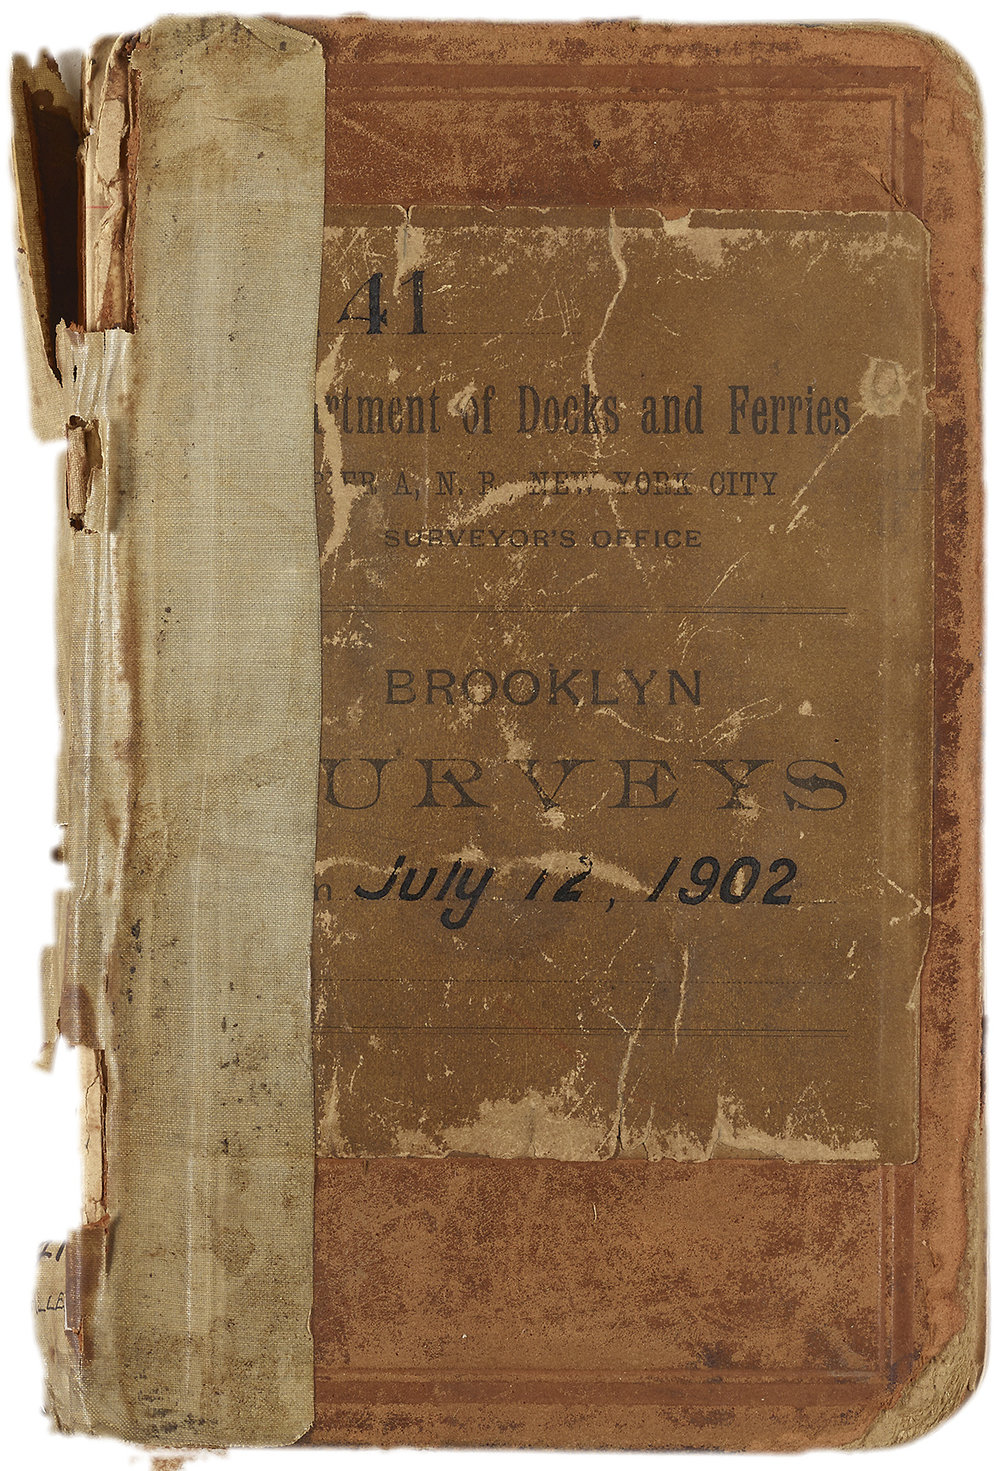 Used by an employee of the Department of Docks and Ferries, this 1902-1903 surveyor's notebook contains hand-sketched maps of Brooklyn, largely focused on the waterfront. Department of Ports and Trade Collection, NYC Municipal Archives.